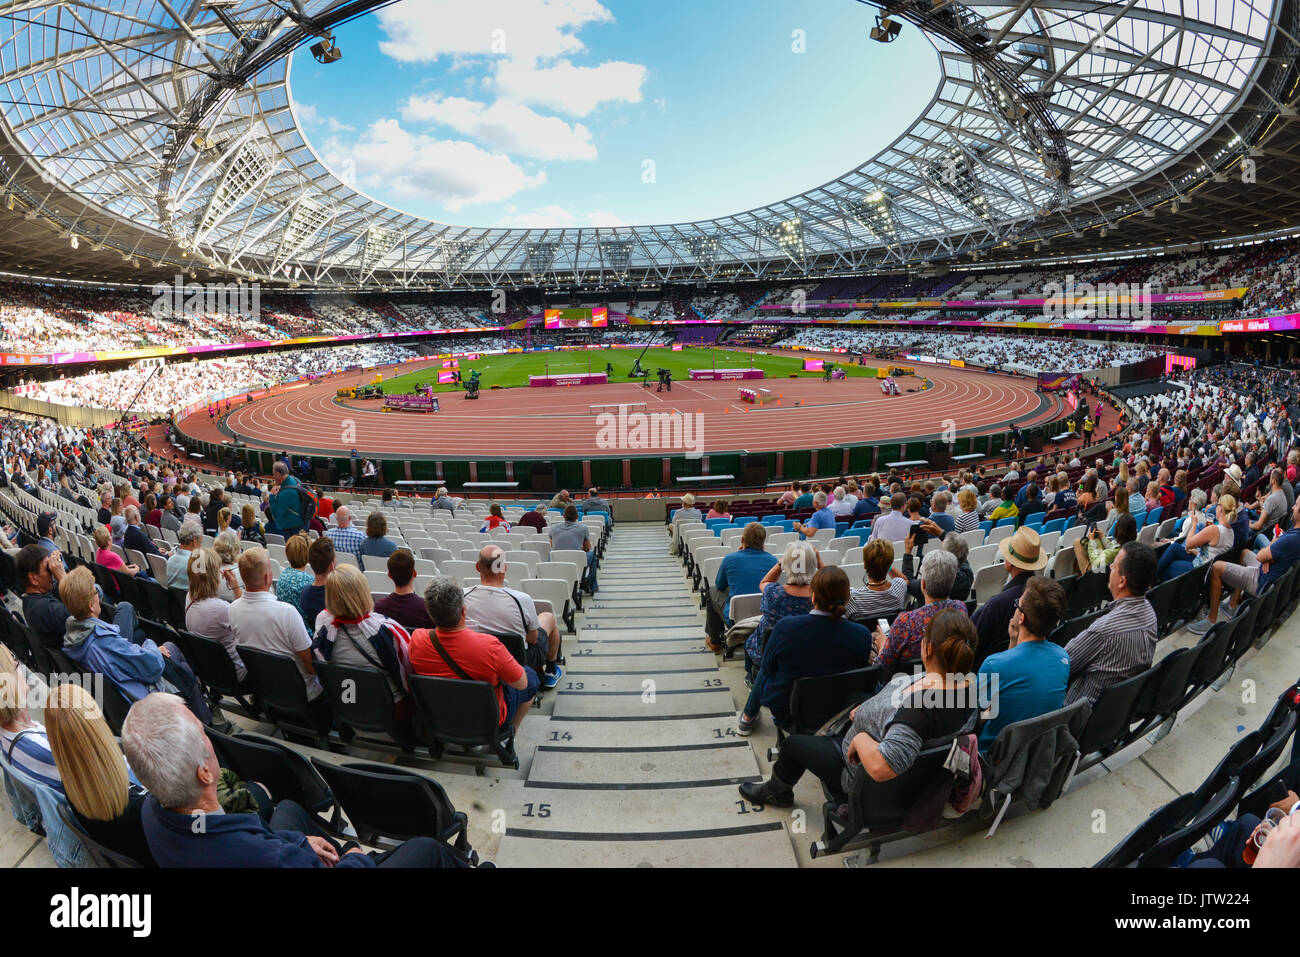 London, UK. 10th August 2017. IAAF World Championships. Day 7. Stadium atmosphere. Credit: Matthew Chattle/Alamy Stock Photo